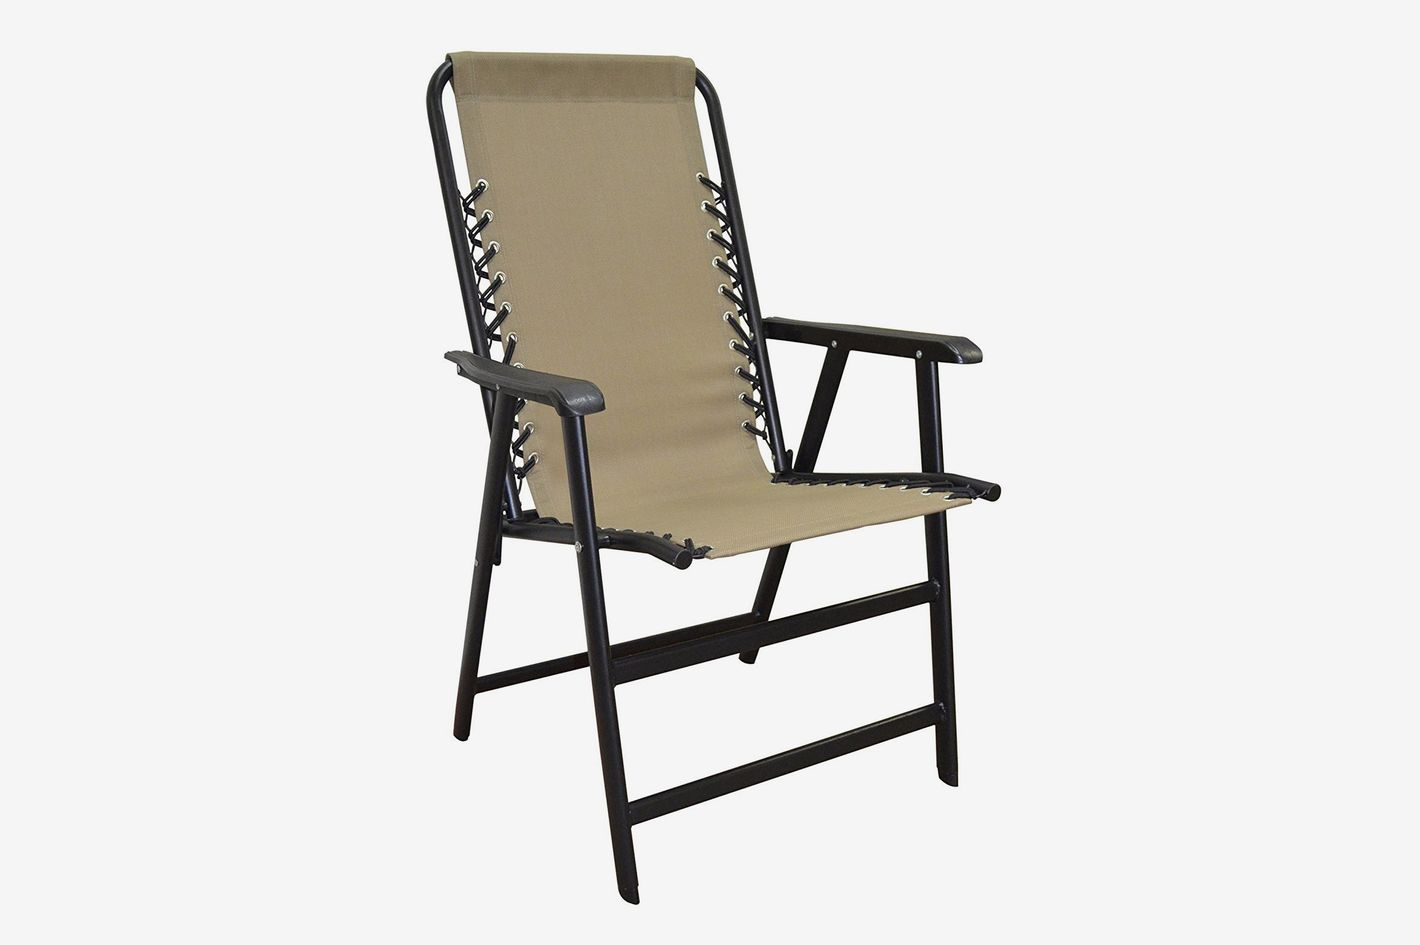 Caravan Sports Suspension Folding Chair At